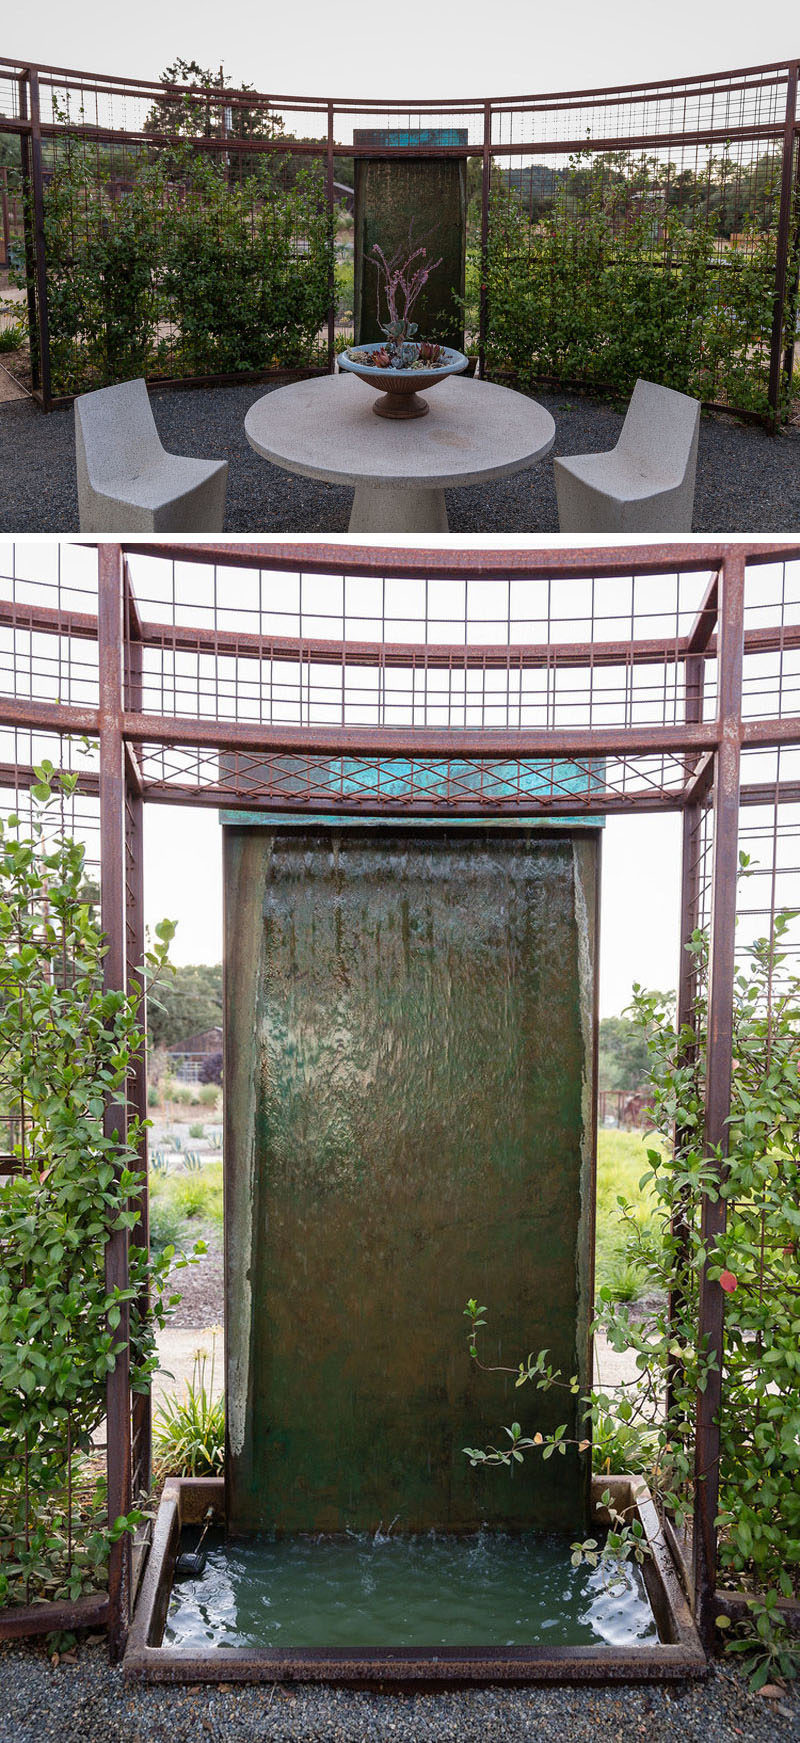 For intimate gatherings, this backyard has a small sitting area with a water feature, is surrounded by a curved steel trellis, creating a sense of privacy from the rest of the garden. #WaterFeature #Garden #Landscaping #SittingArea